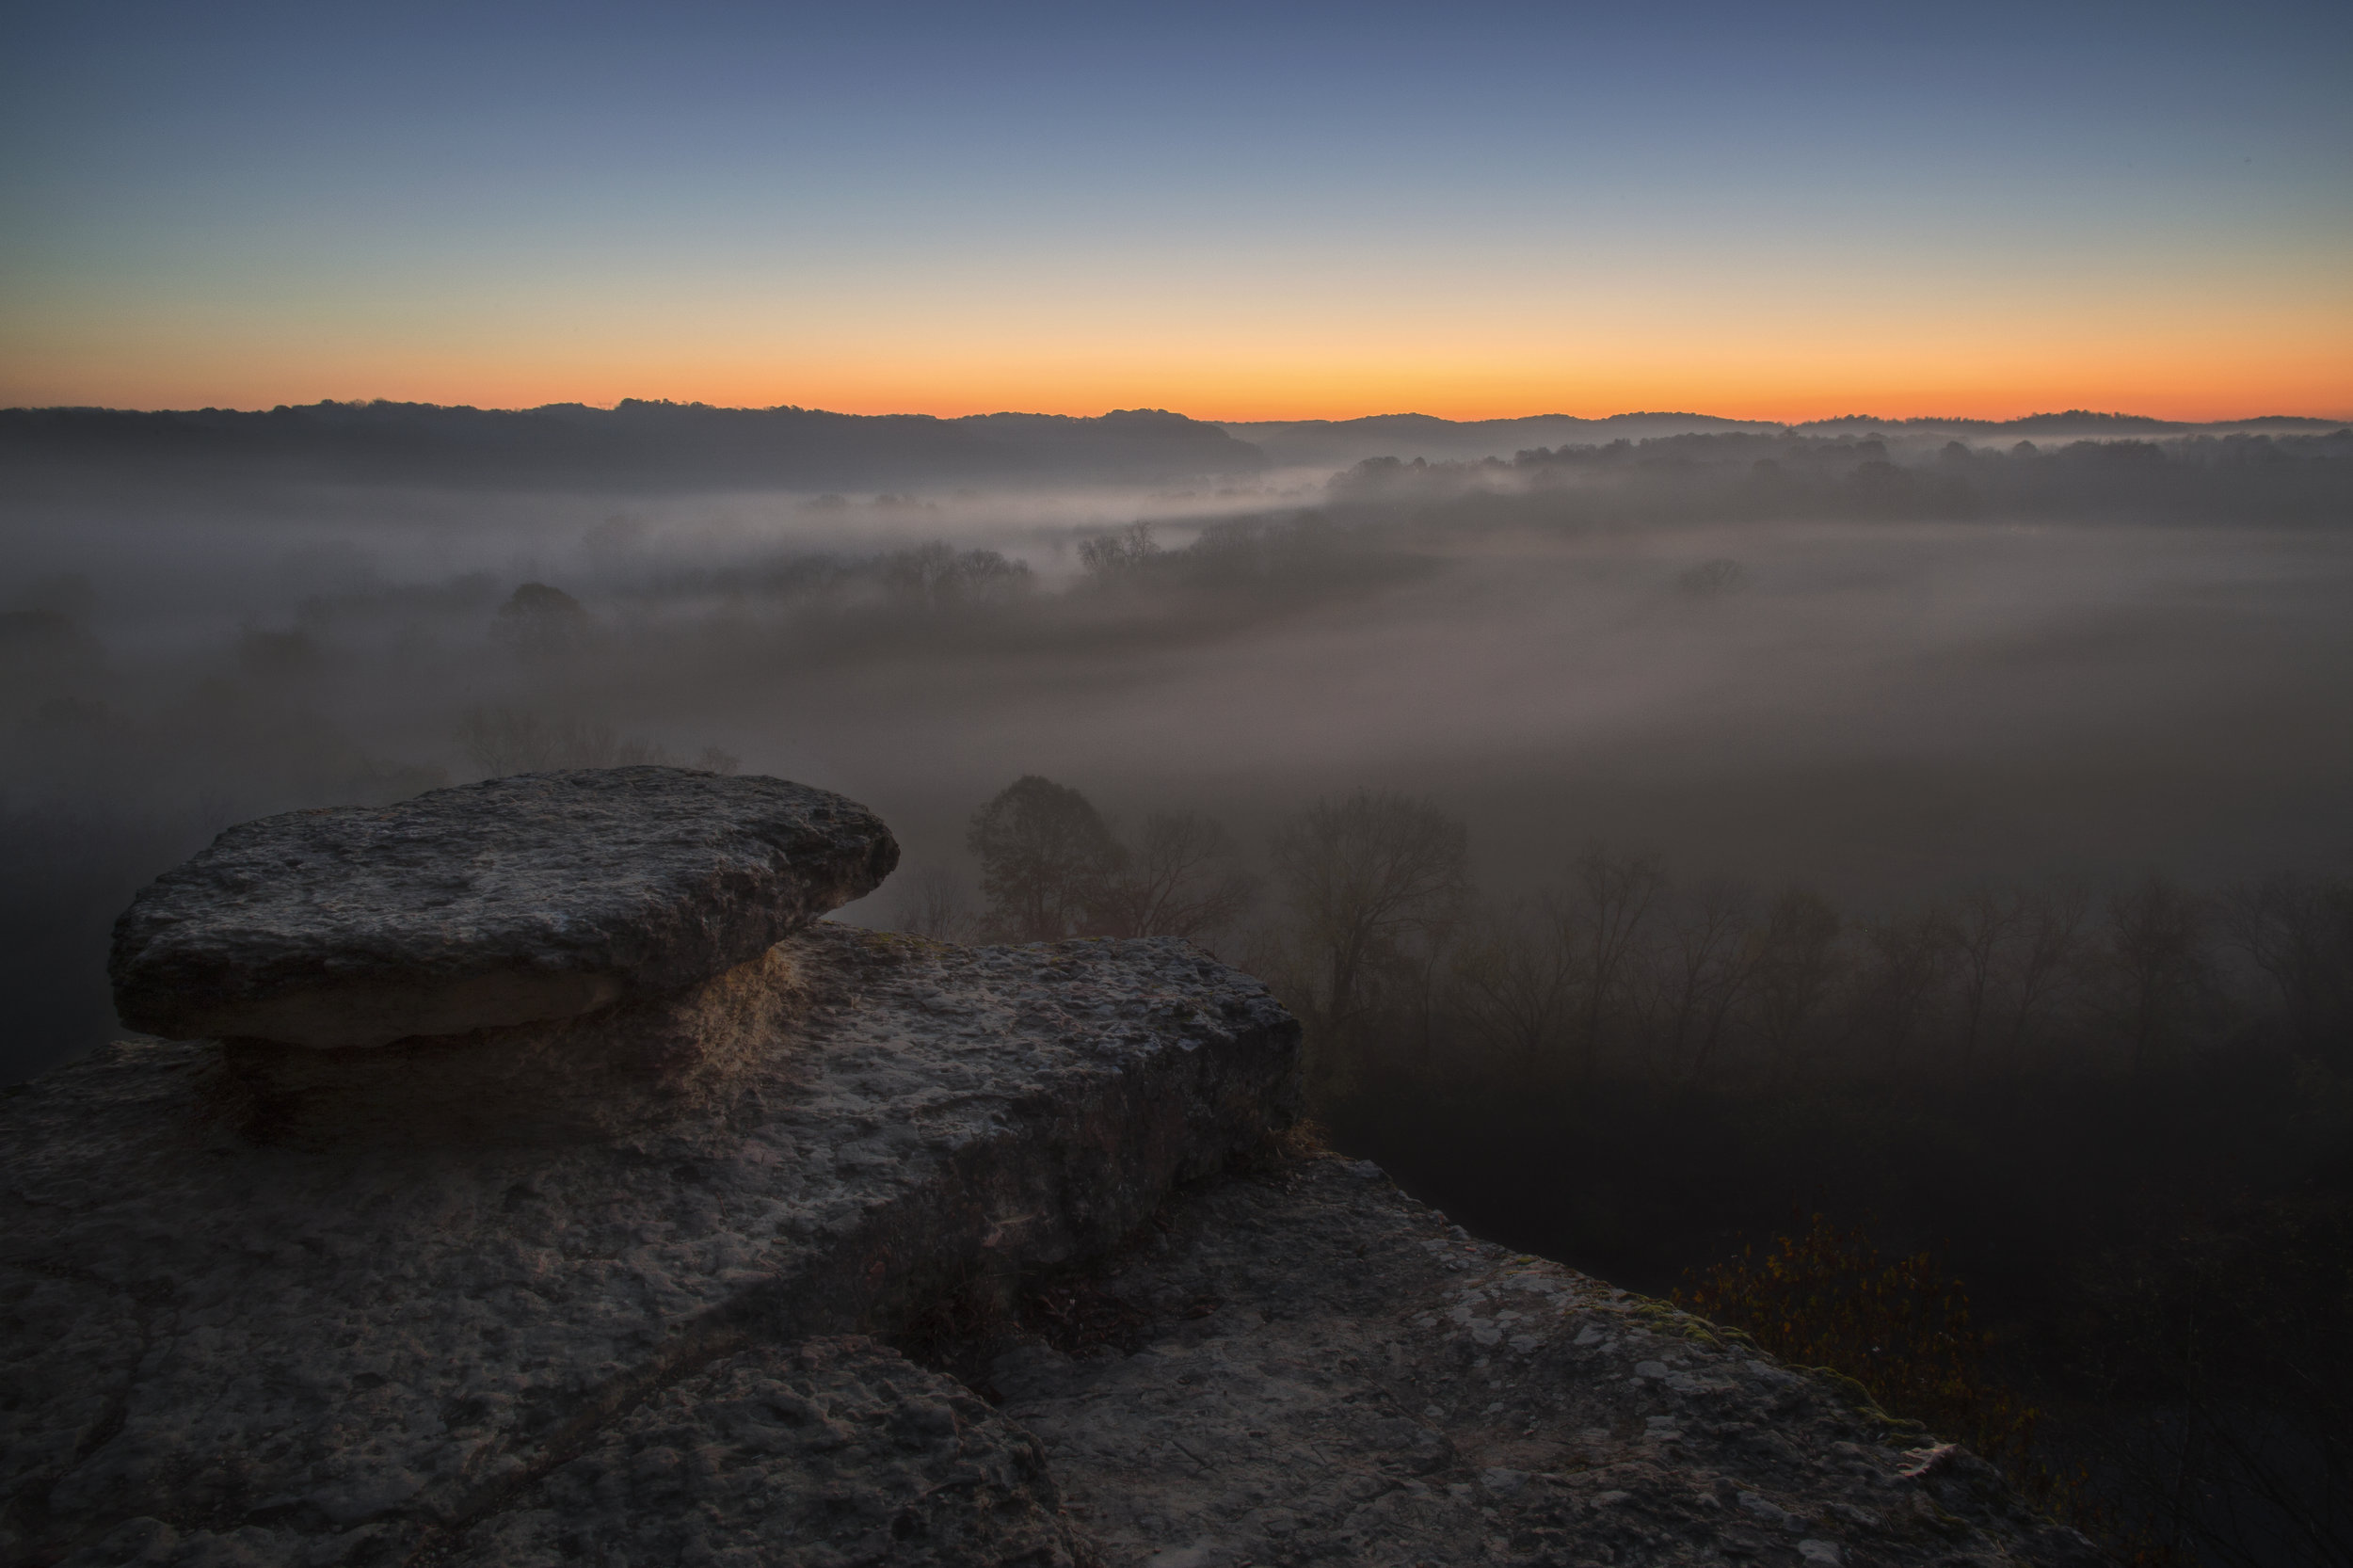 Sunrise at the Narrows of the Harpeth